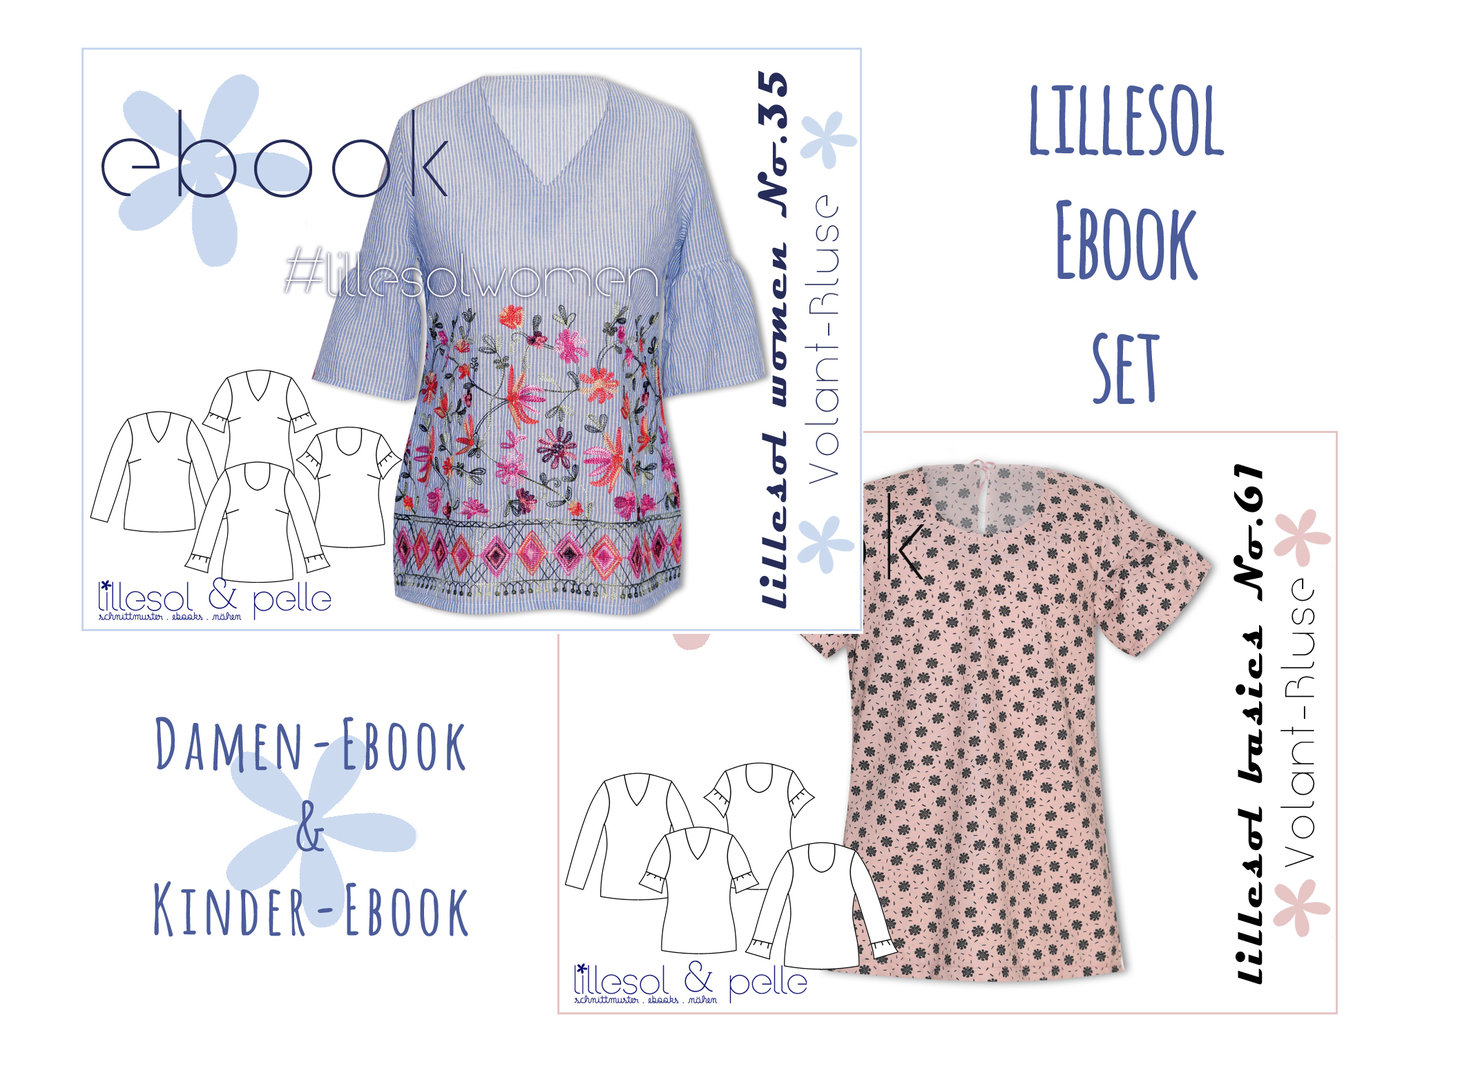 lillesol ebook set basics No.61 und women No.35 * mit Video-Nähanleitung *